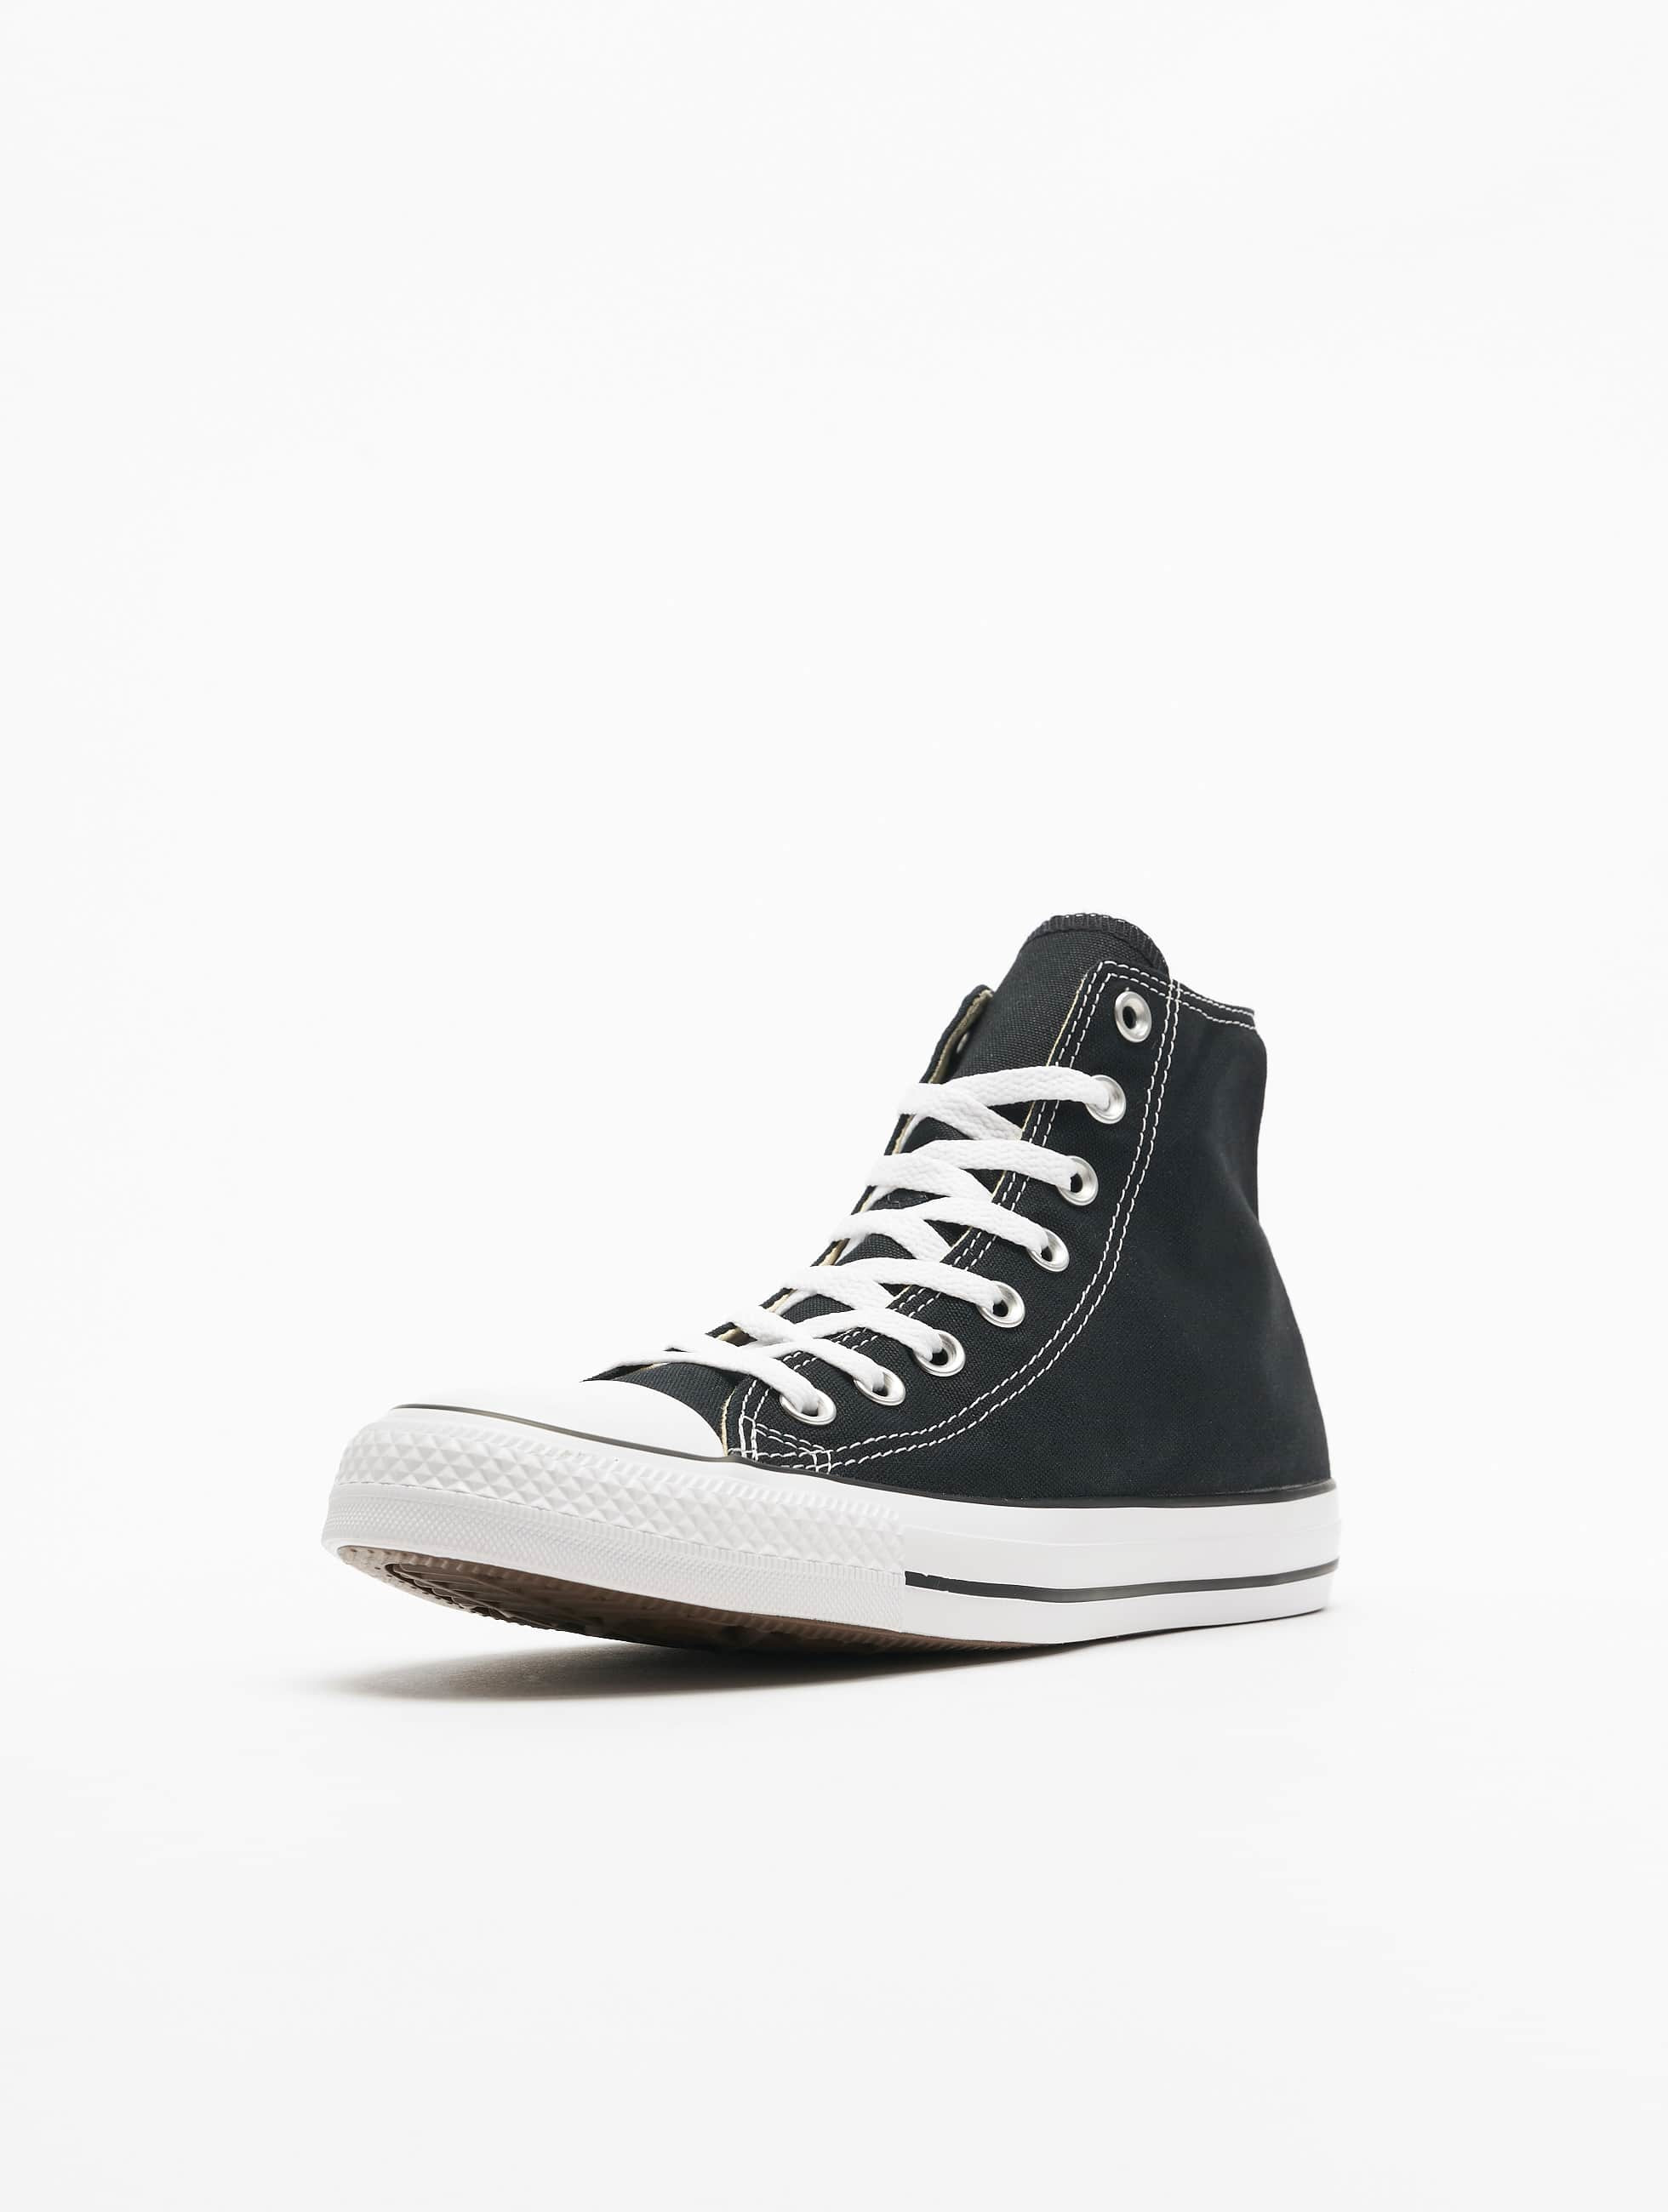 converse herren sneaker all star high chucks in schwarz 19936. Black Bedroom Furniture Sets. Home Design Ideas